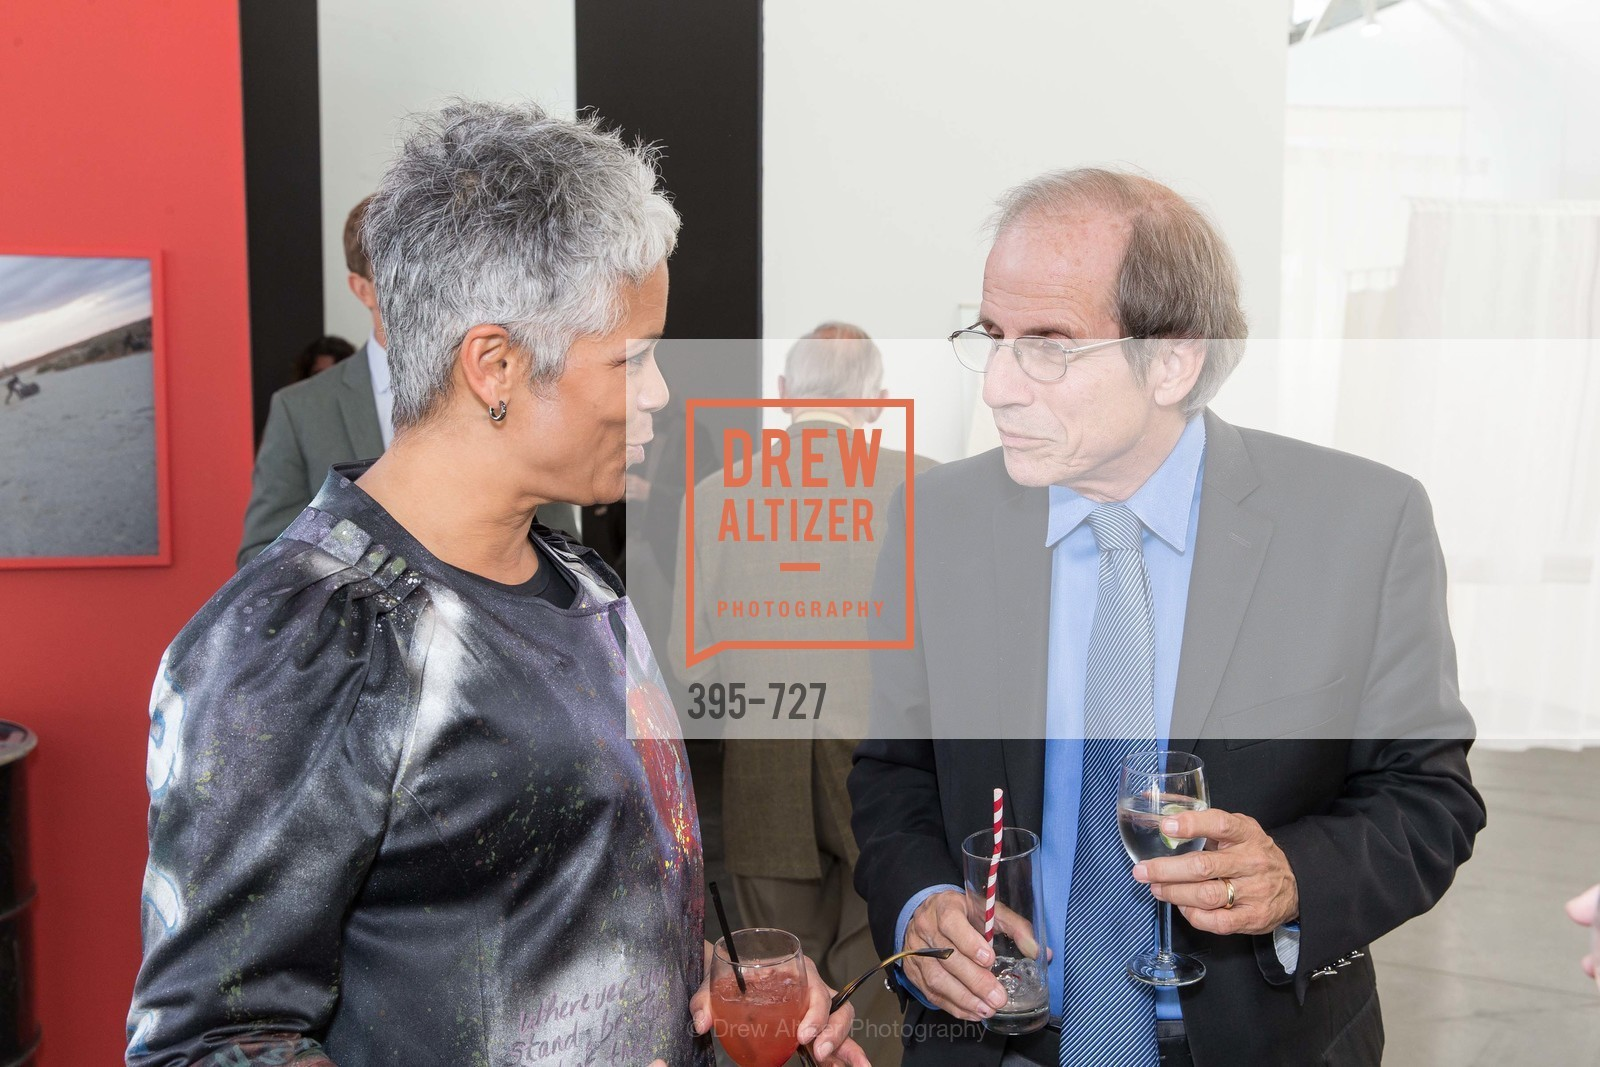 Dana King, Michael Krasny, SAN FRANCISCO ART INSTITUTE Gala Honoring Art Visionary and Advocate ROSELYNE CHROMAN SWIG, US, May 14th, 2015,Drew Altizer, Drew Altizer Photography, full-service agency, private events, San Francisco photographer, photographer california